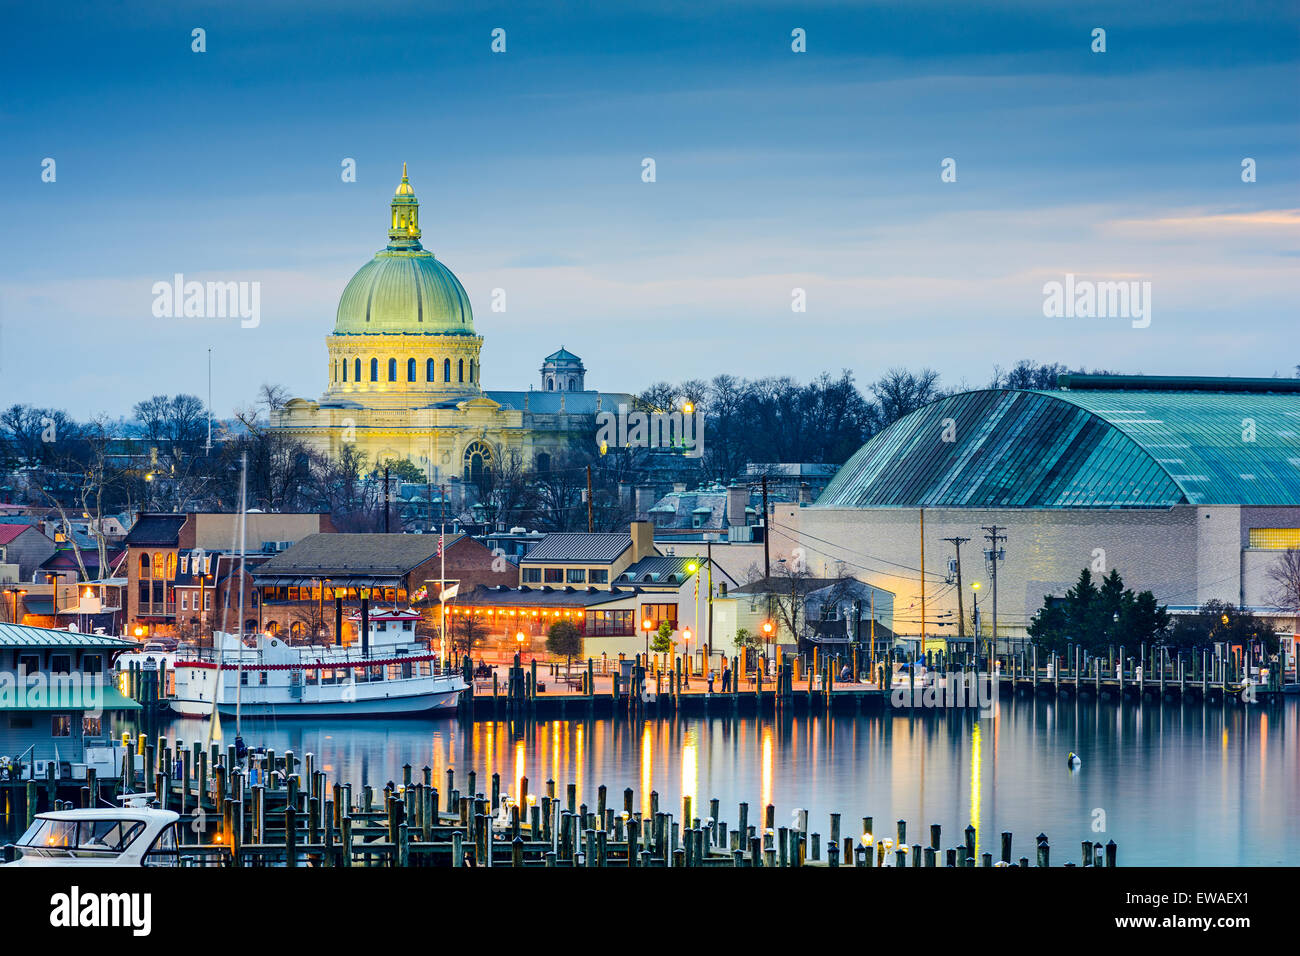 Annapolis, Maryland, USA town skyline at Chesapeake Bay with the United States Naval Academy Chapel dome. - Stock Image